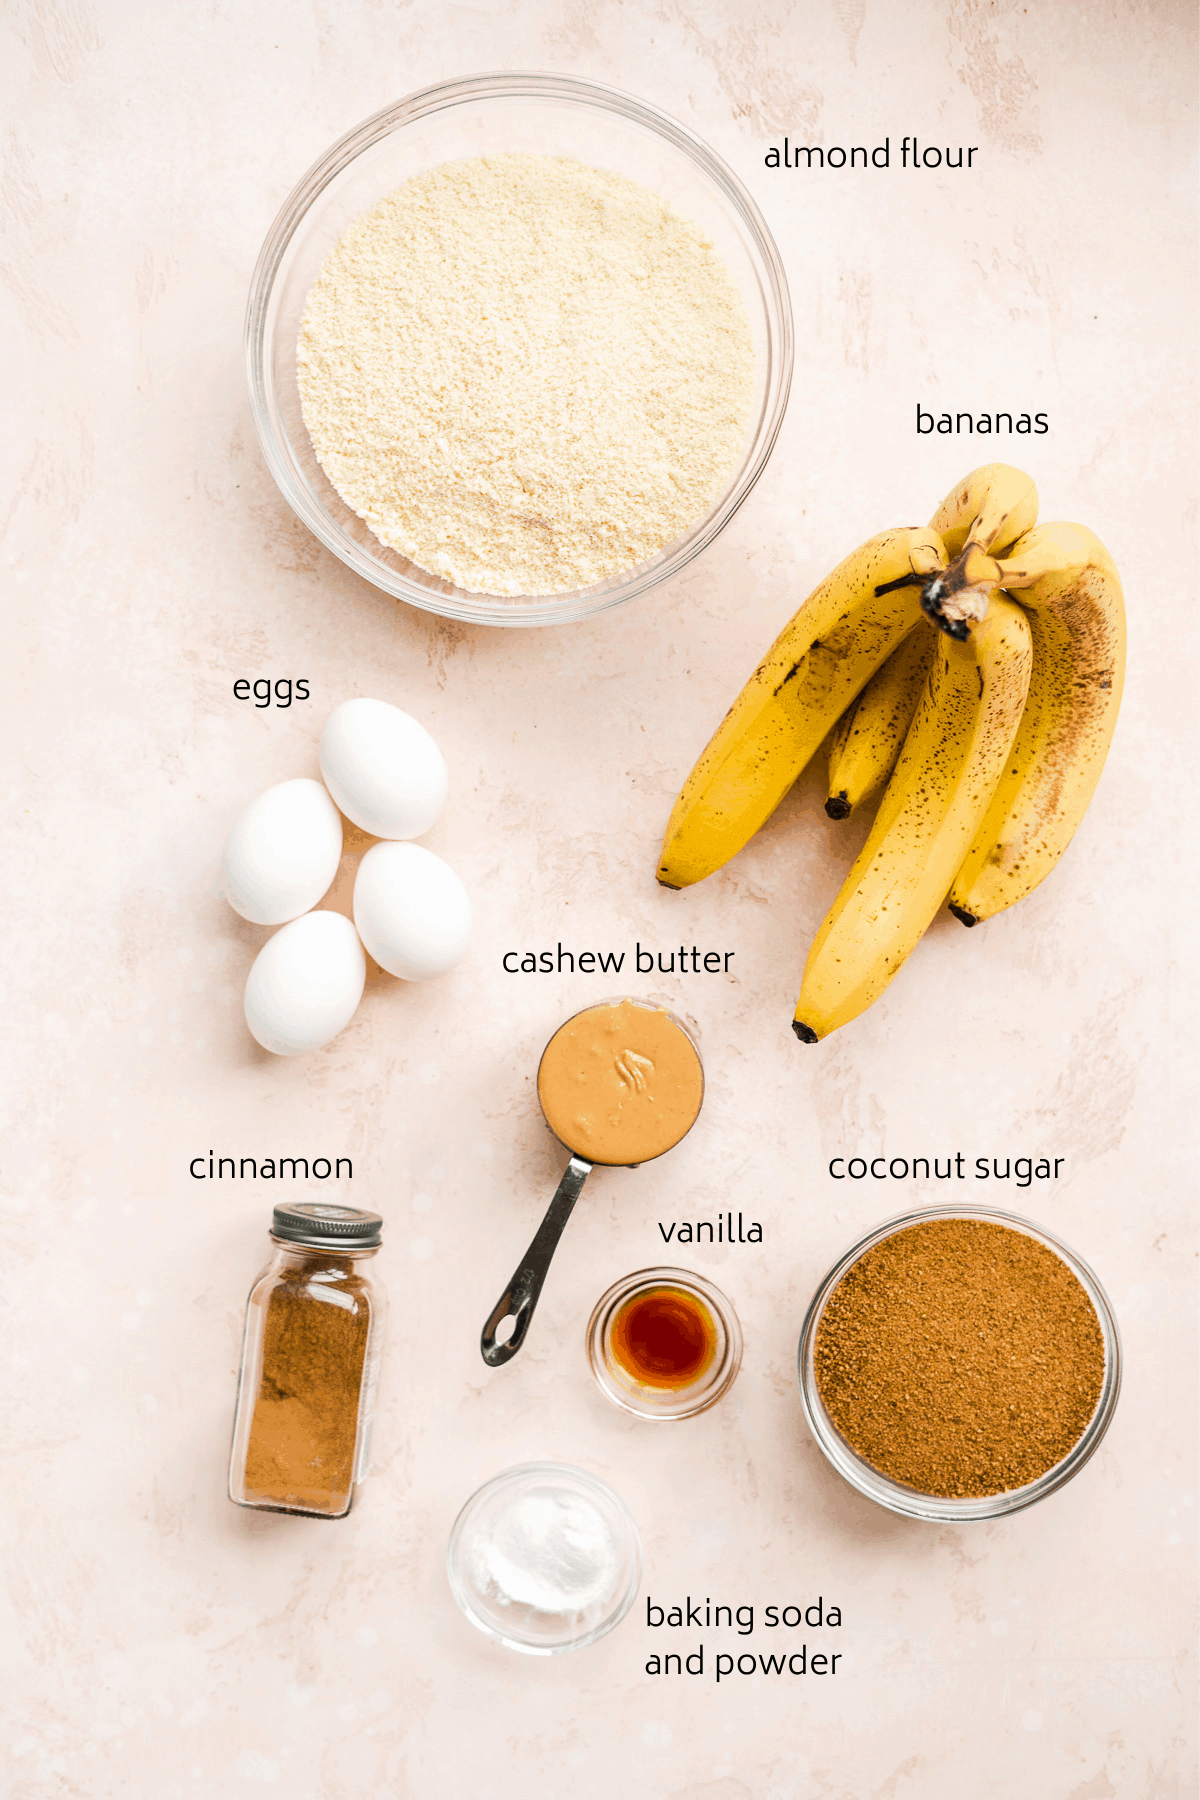 Image of ingredients on pink surface with black labels including bananas, eggs, cashew butter, etc.